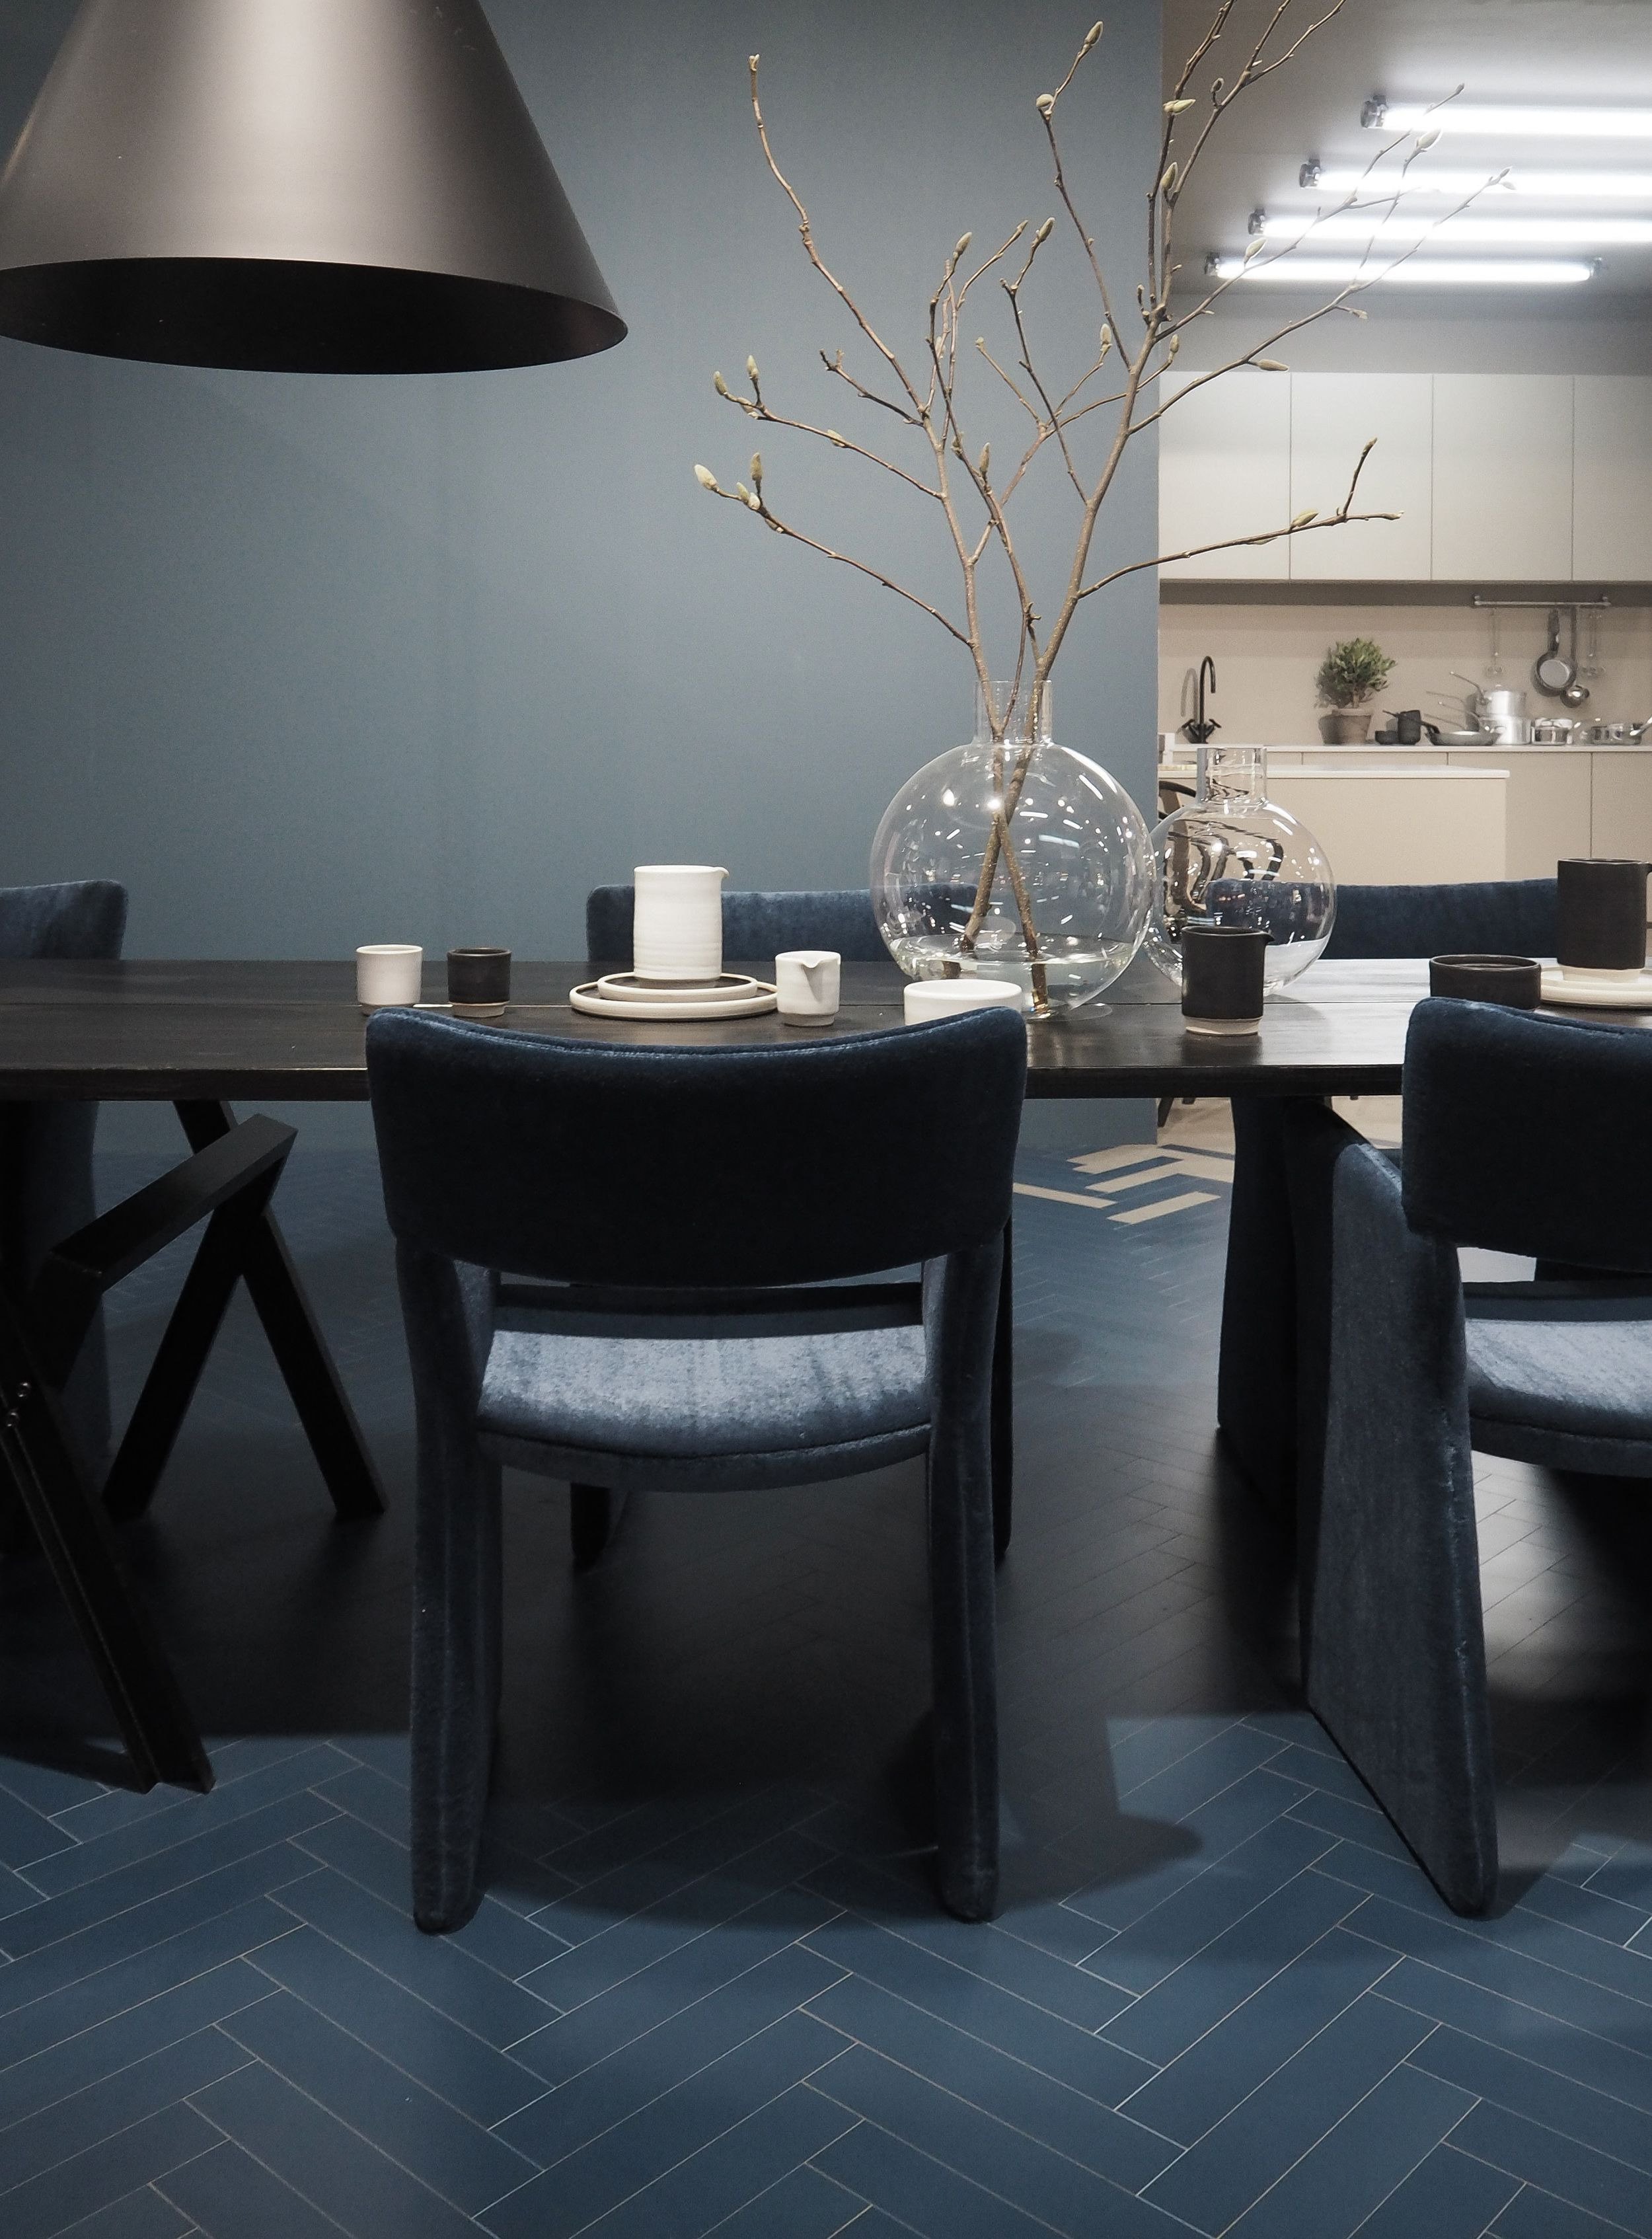 Meeting Room By Christine Rudolph Denmark A Part Of The Trends Exhibition During Stockholm Furniture Light Fair 2016 Stockholmfurniturefair